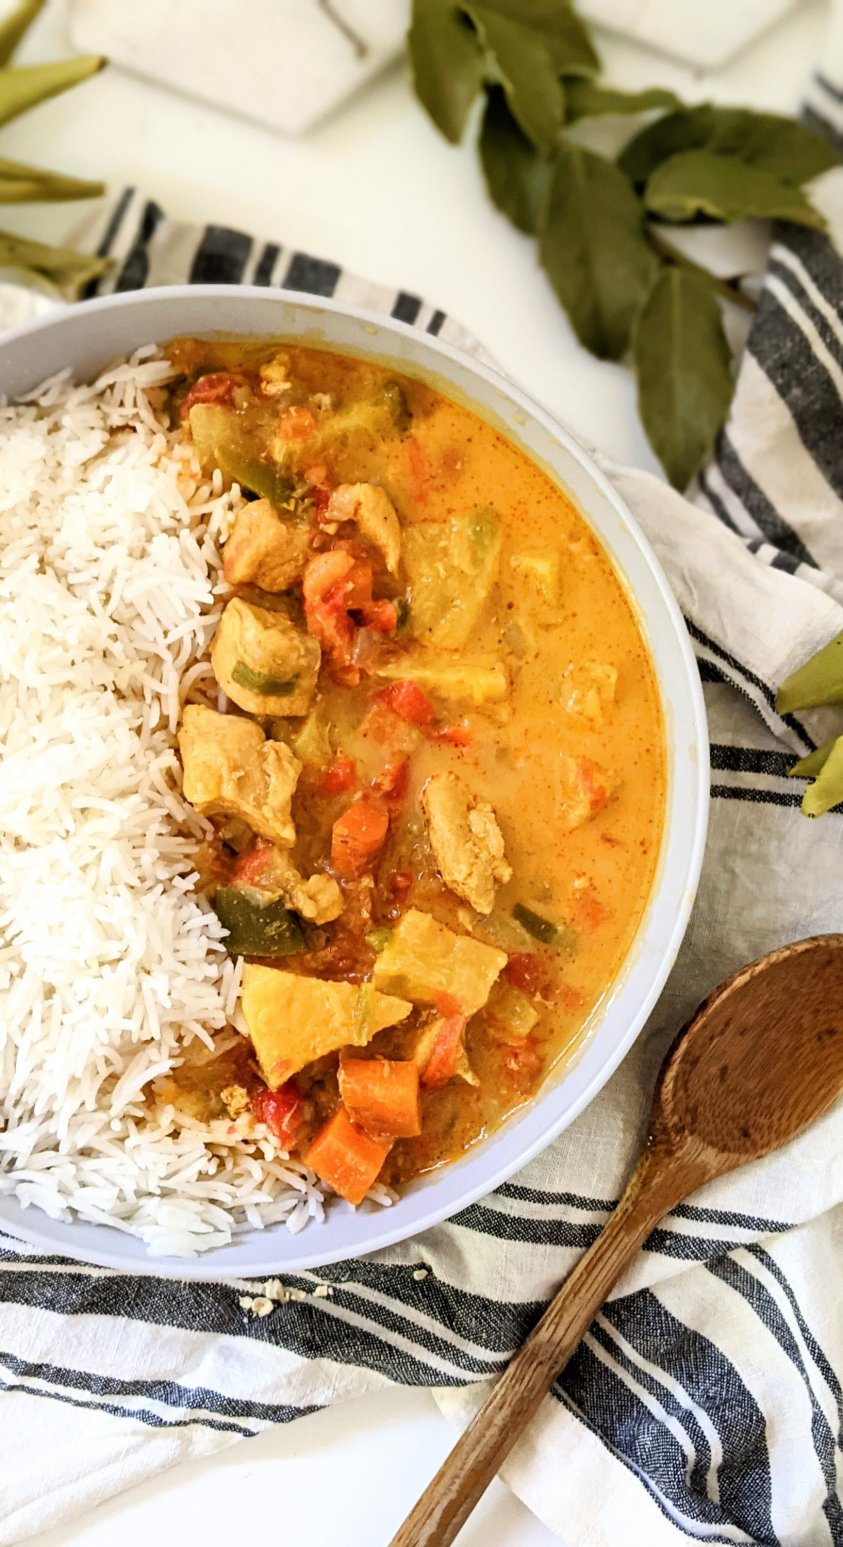 dairy free meal prep chicken recipes without dairy gluten free make ahead chicken dinners for the family tropical recipes with chicken breast recipes for summer healthy pineapple ginger chicken stew